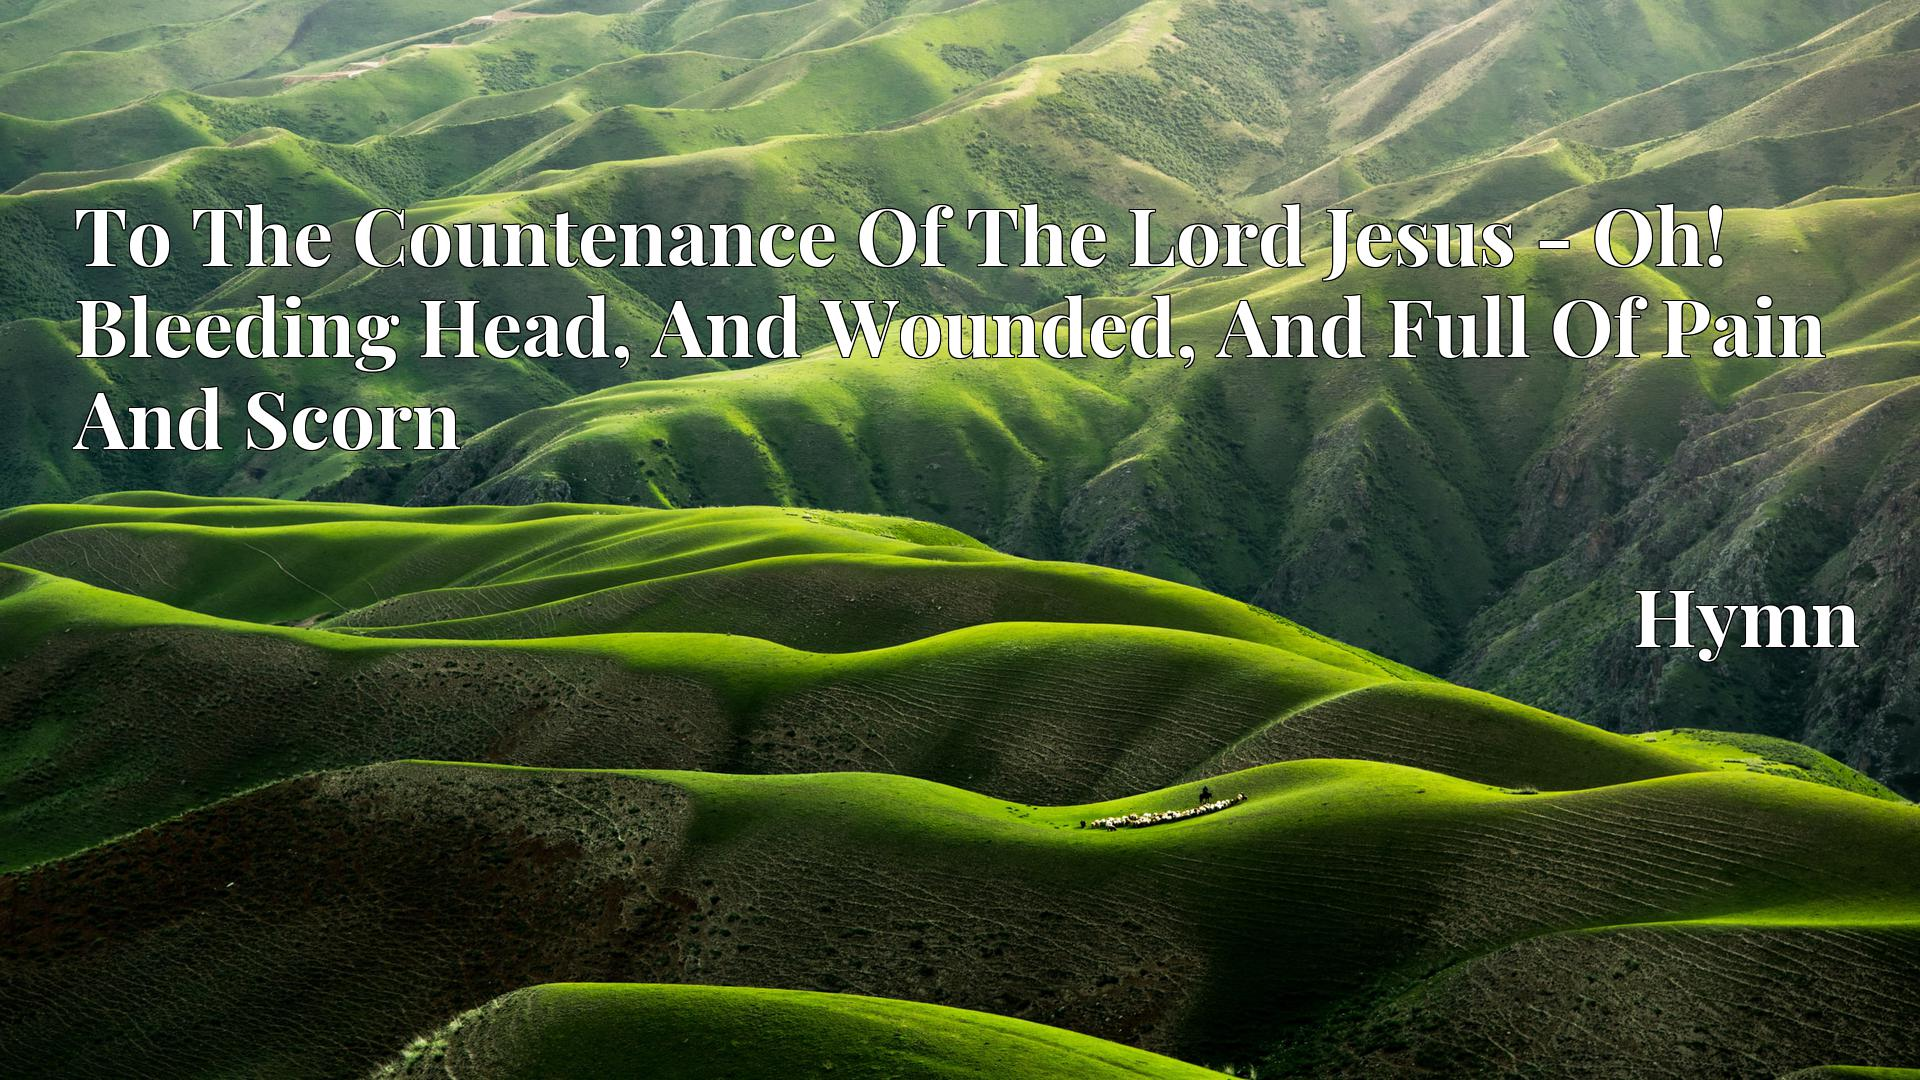 To The Countenance Of The Lord Jesus - Oh! Bleeding Head, And Wounded, And Full Of Pain And Scorn - Hymn